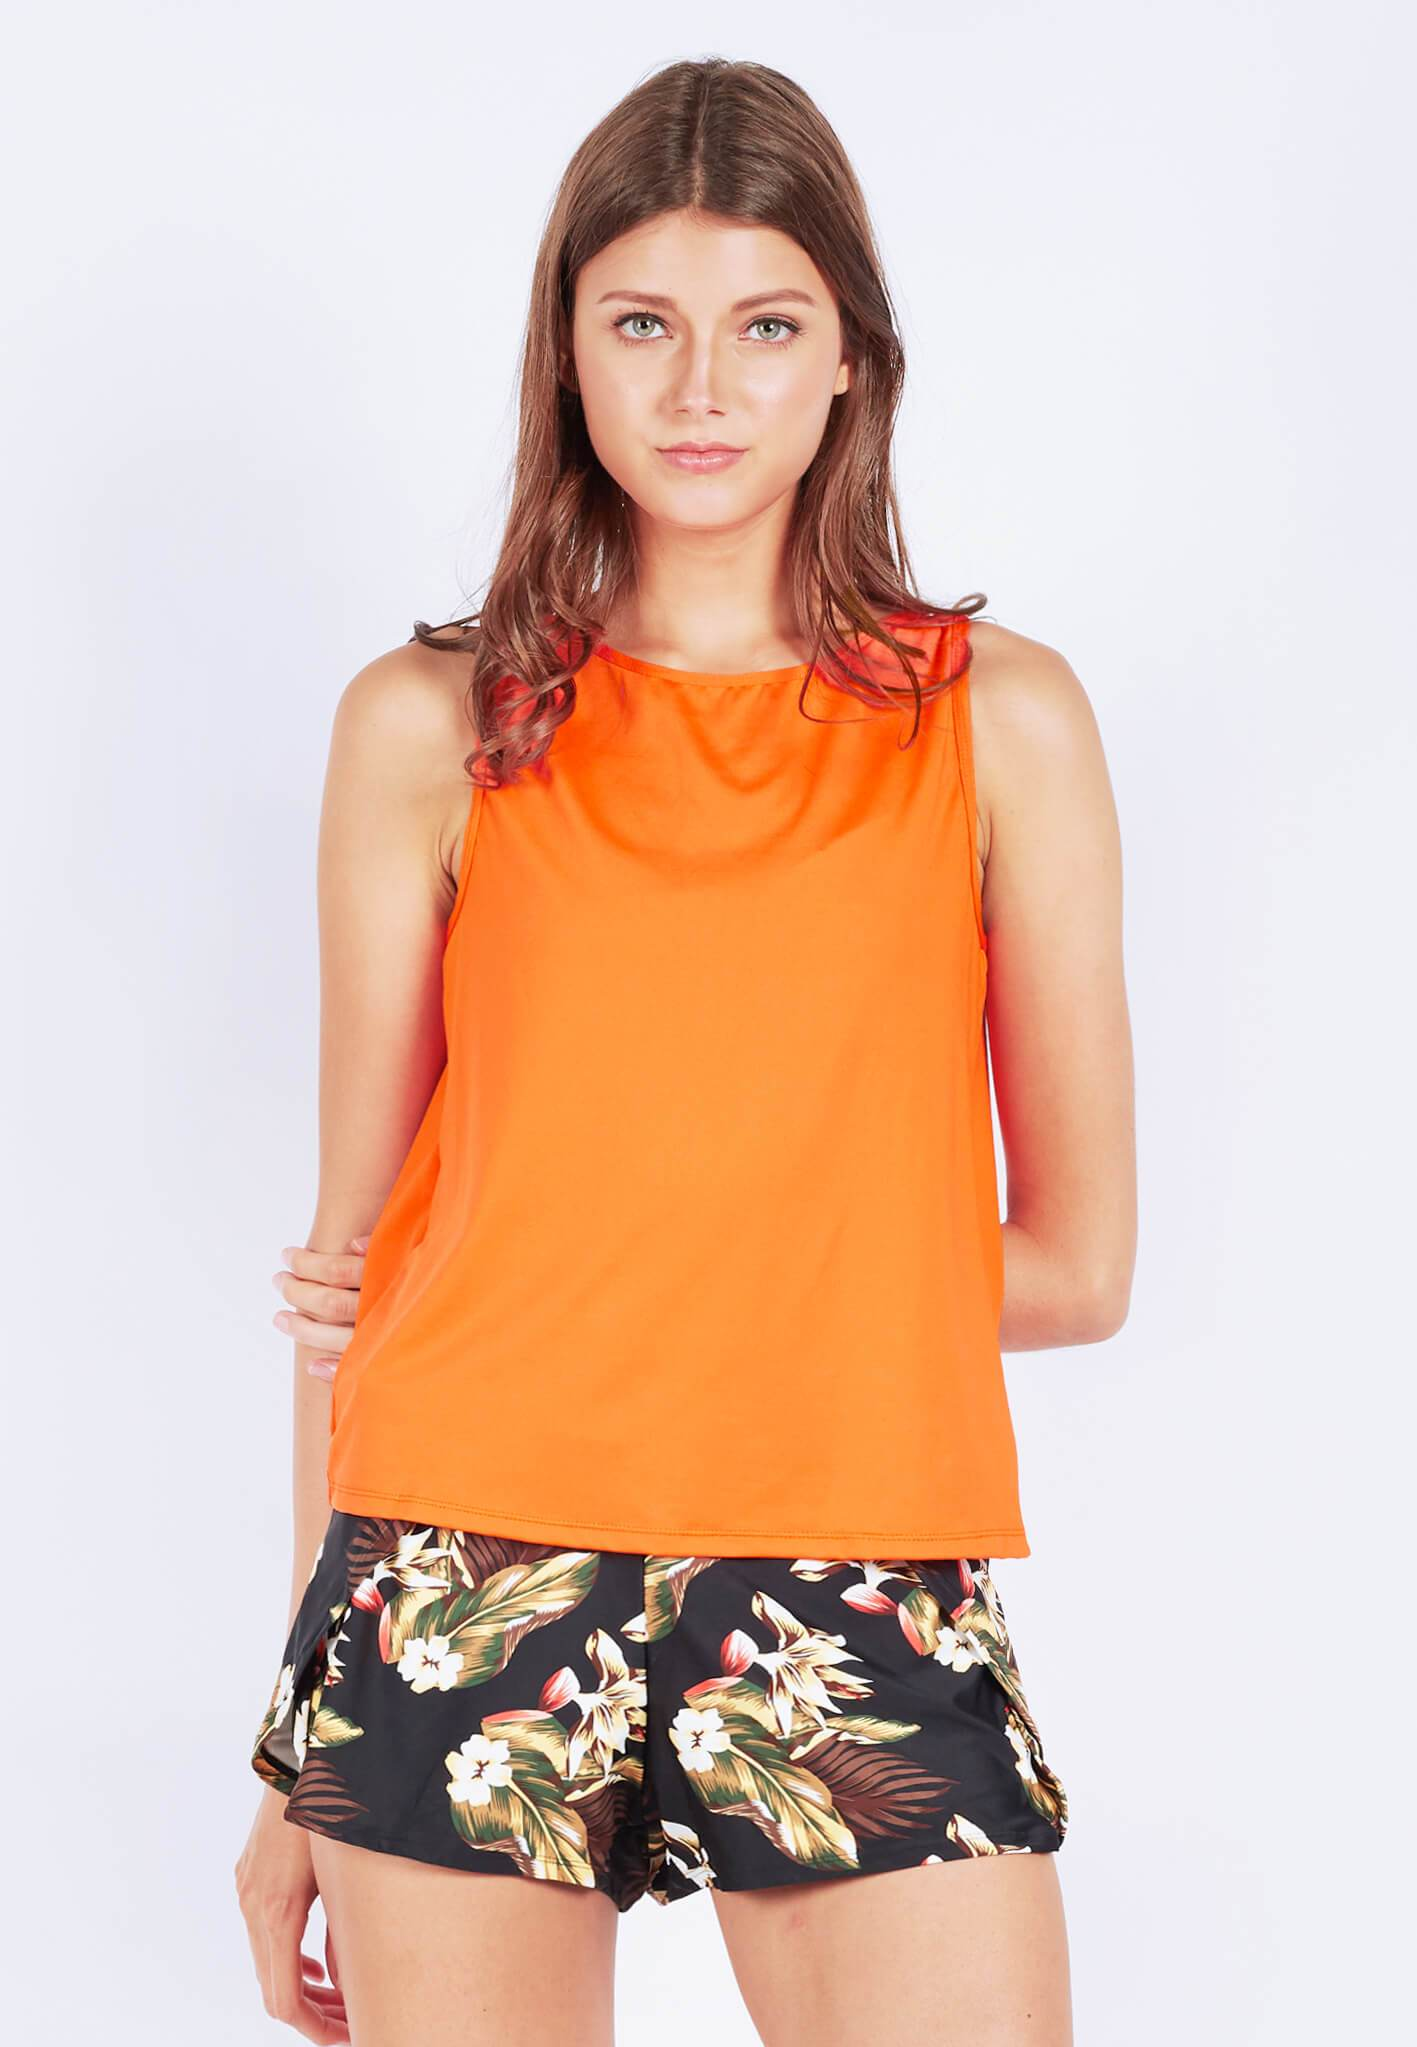 FUNFIT Uplift Tank Top (with Open Back) in Burnt Orange (S - XL)